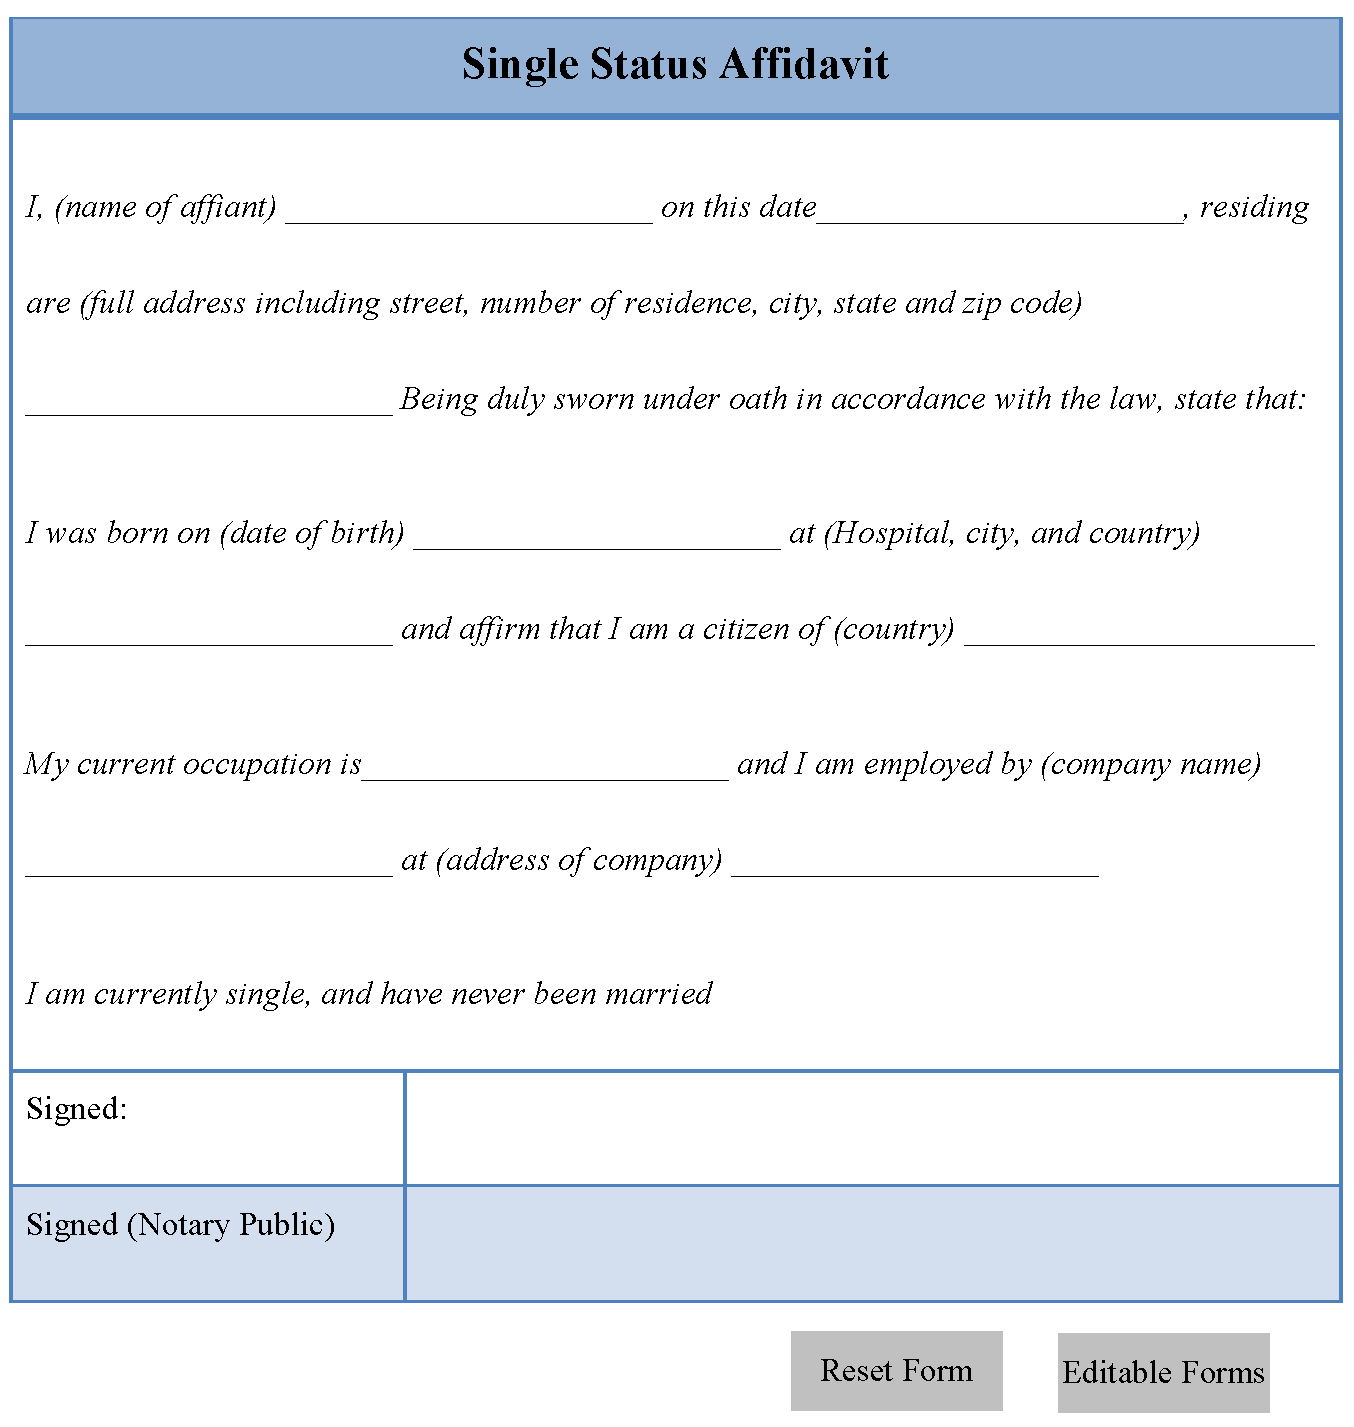 Single Status Affidavit Form